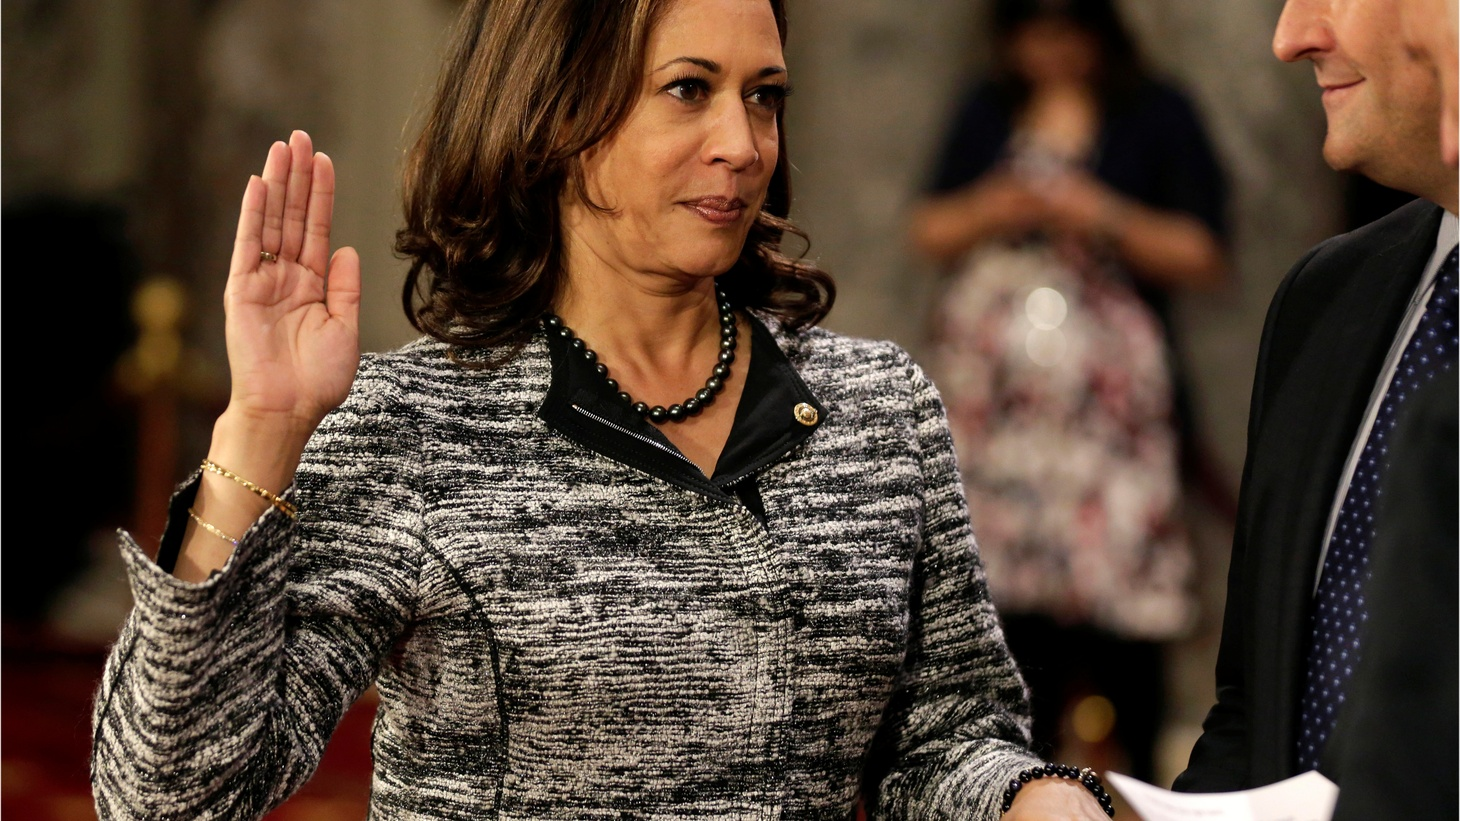 Does the firing of FBI Director James Comey signal a constitutional crisis? Will there be a special prosecutor named? How will the FBI investigation proceed? We hear from California Senator Kamala Harris, California Congressman and ranking member of the House Intelligence Committee Adam Schiff, and others.